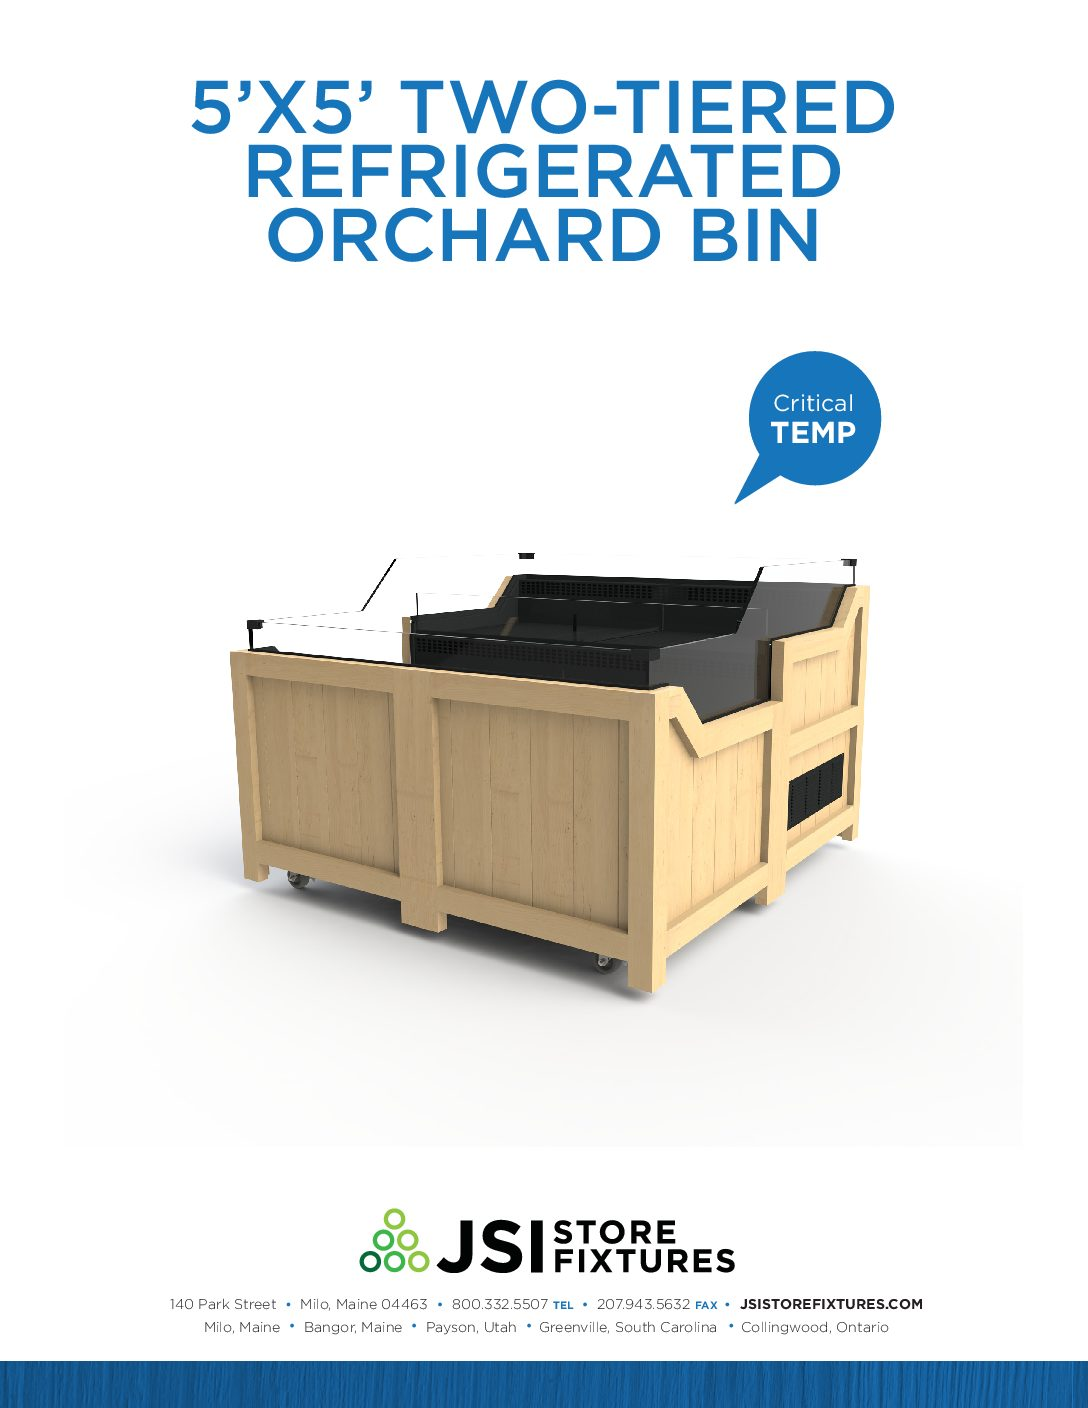 5'x5' Two-Tiered Refrigerated Orchard Bin Spec Sheet